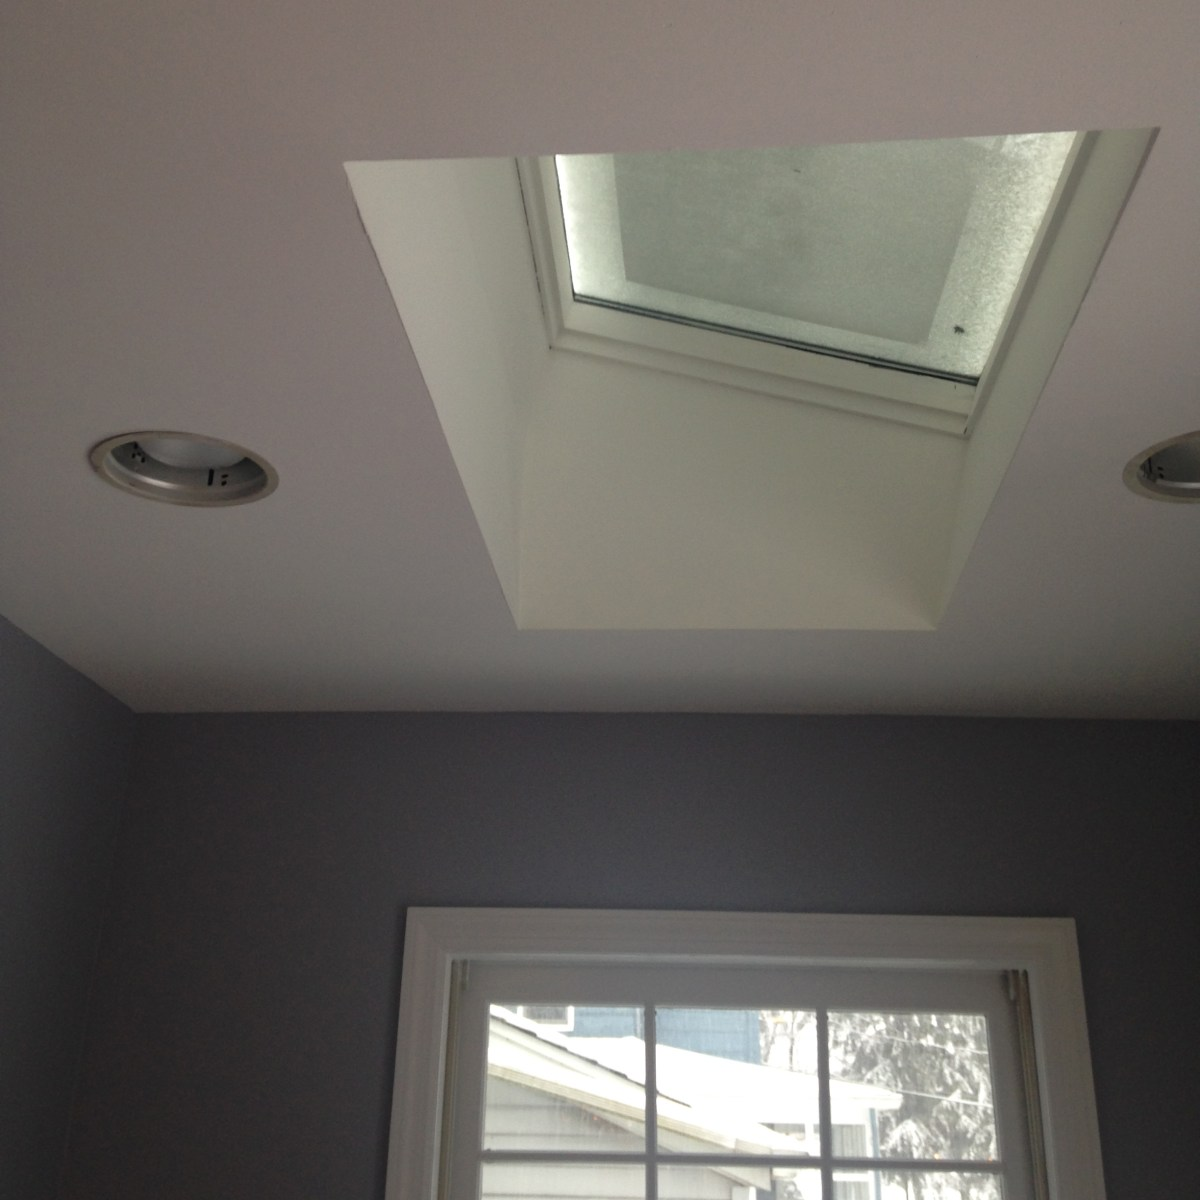 Mold Restoration by AOA - After